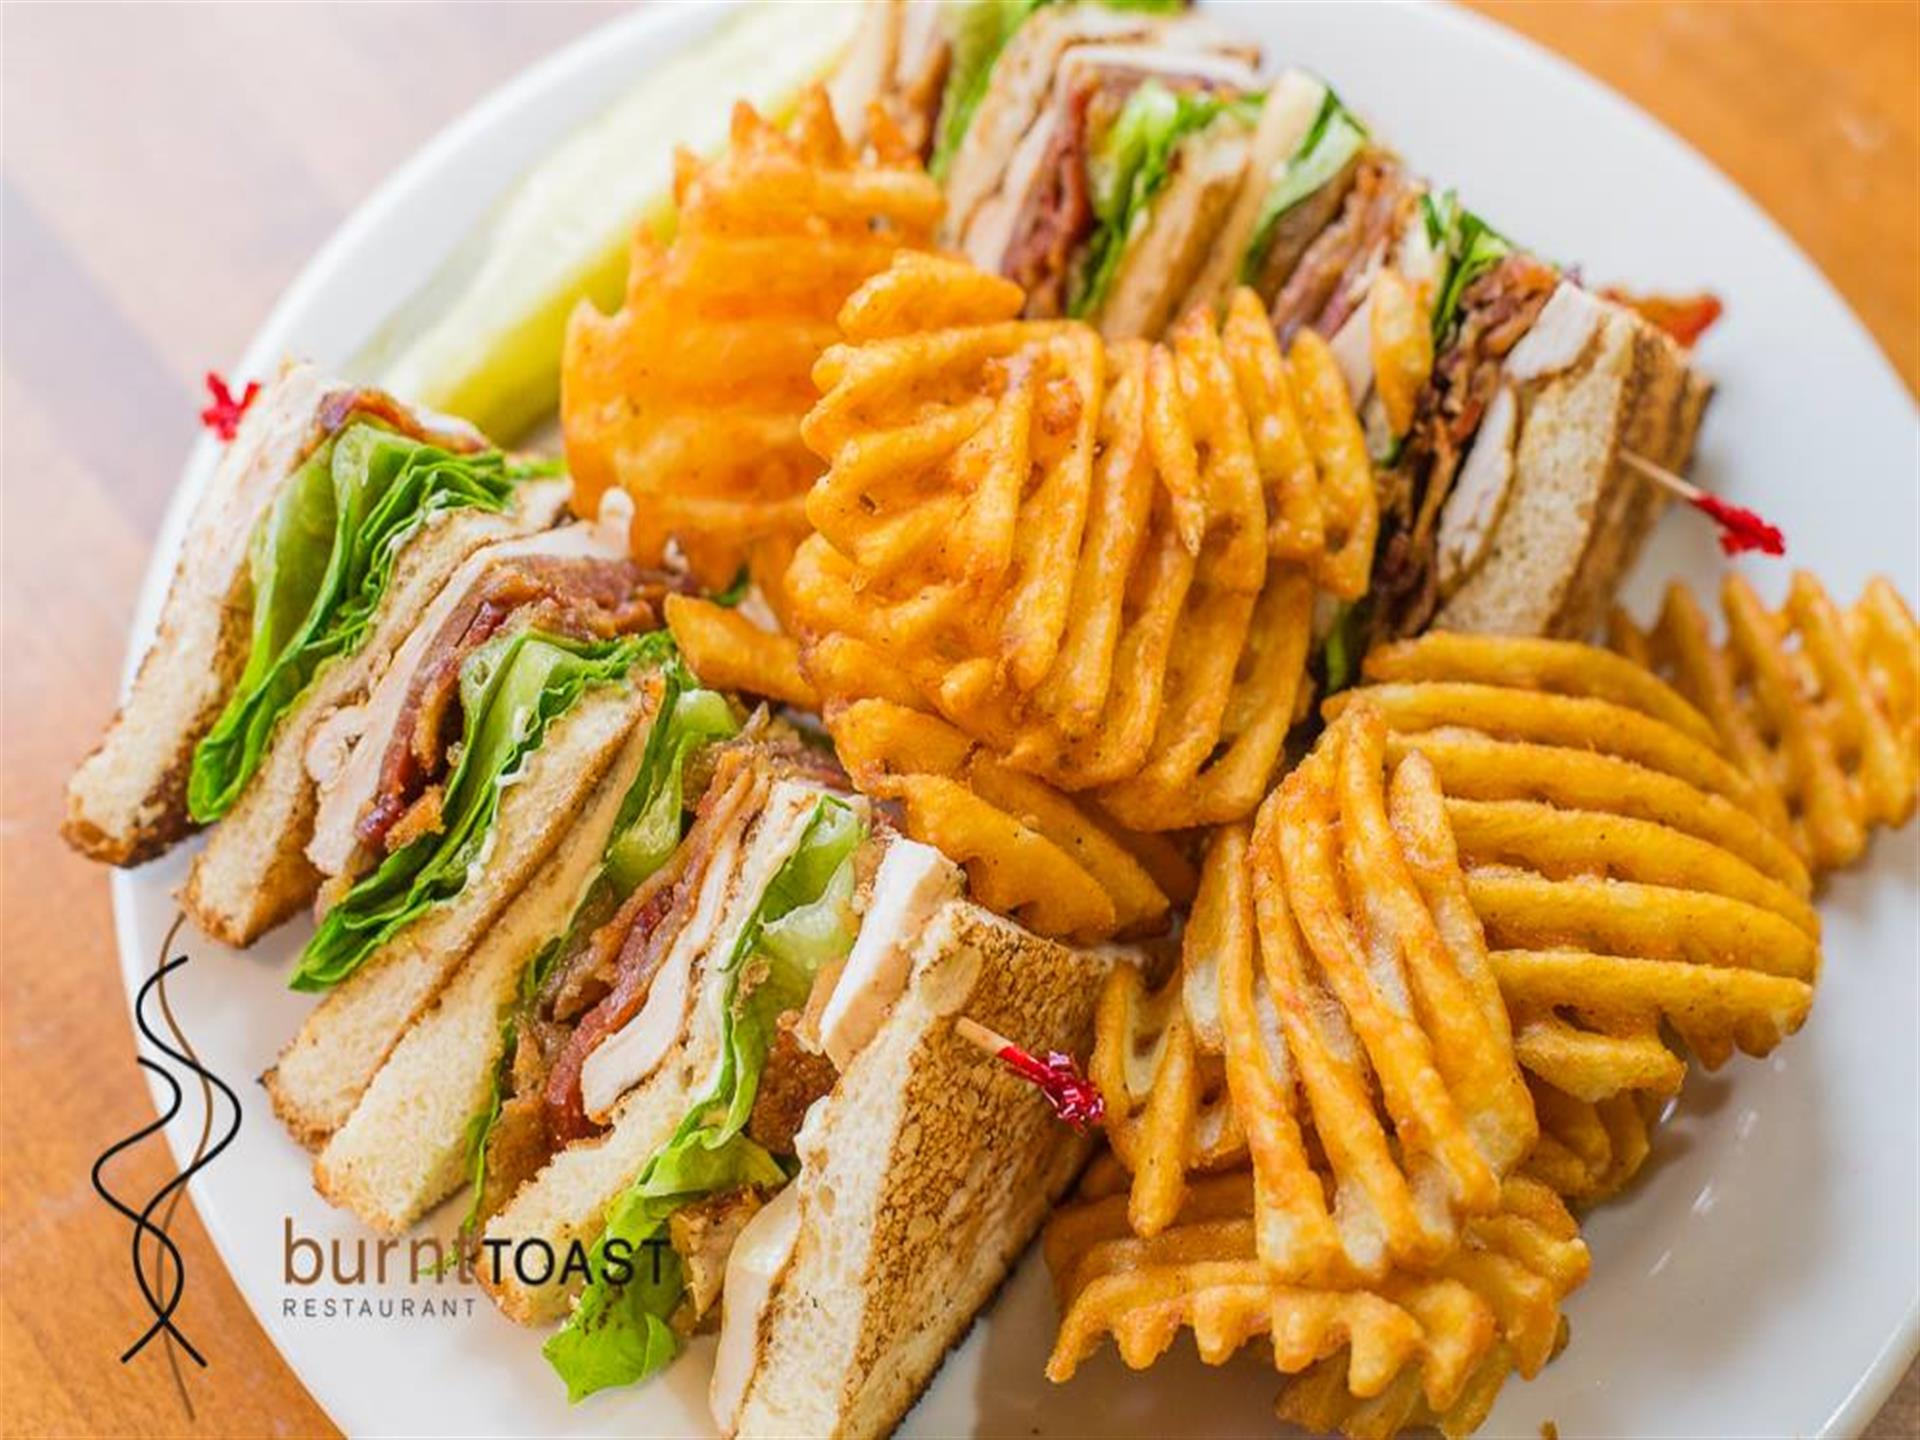 Turkey club sandwich with lettuce, bacon and mayo with waffle fries and a pickle spear